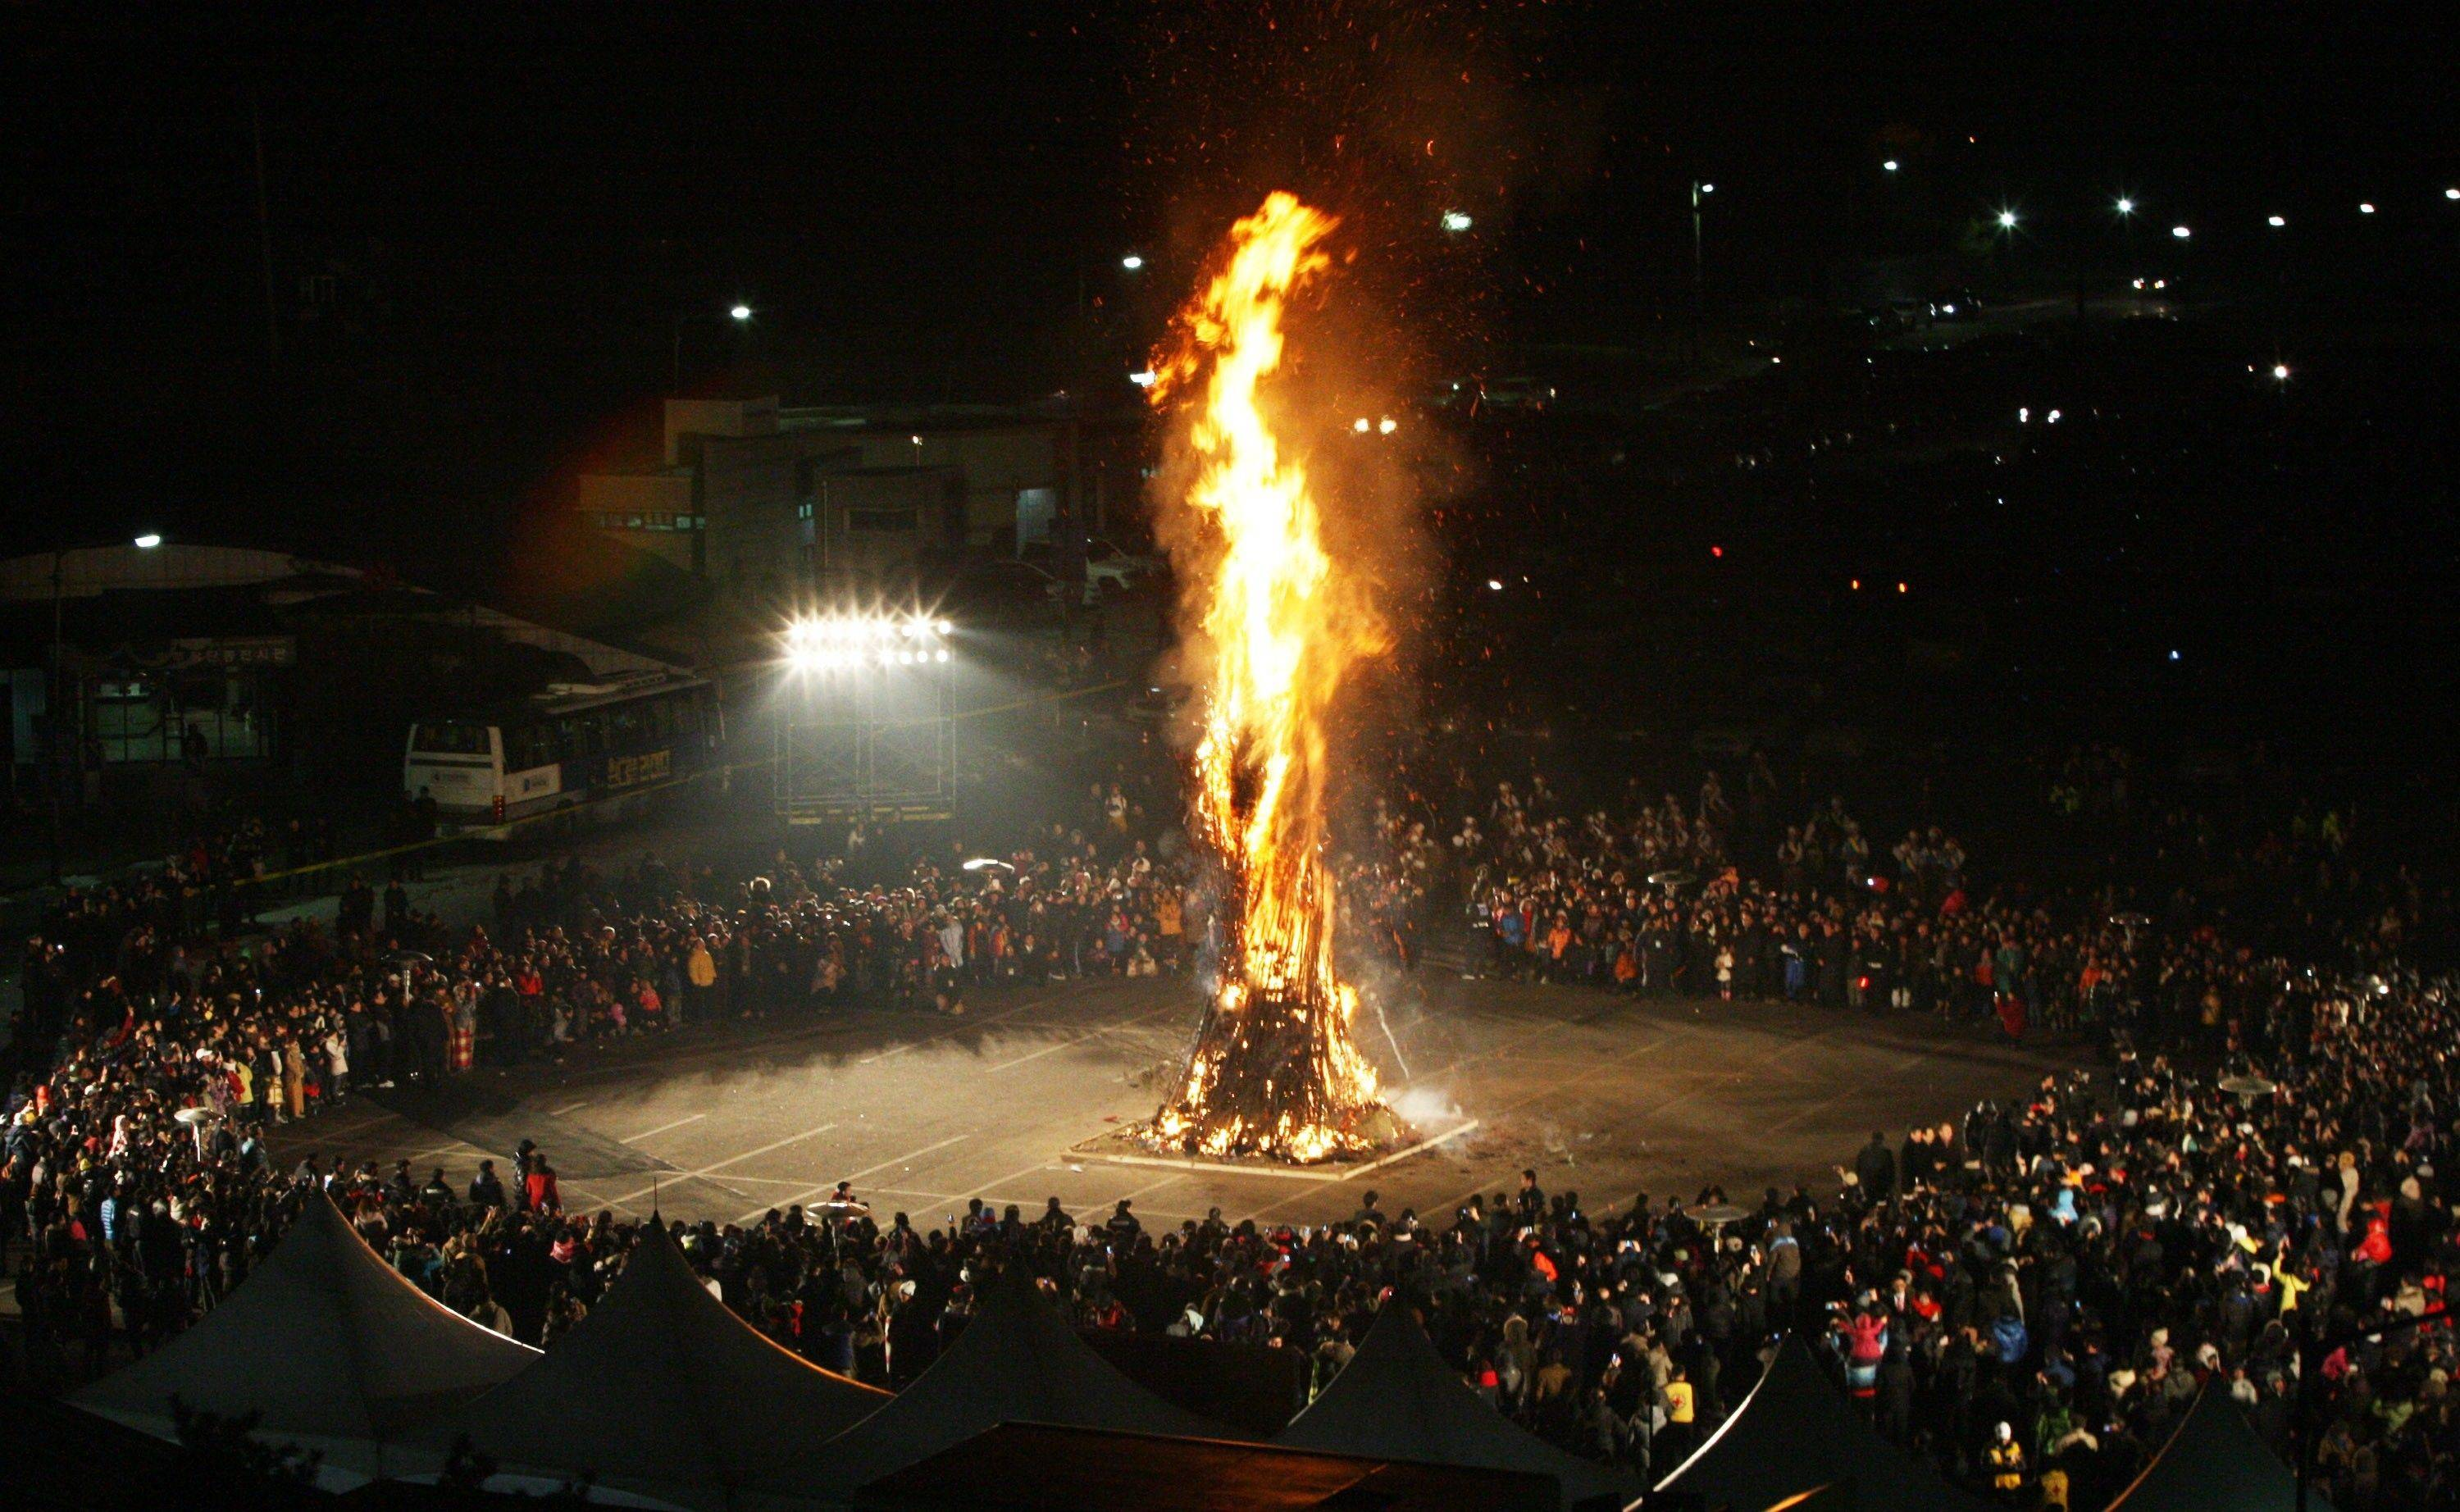 South Koreans view the burning of Daljips, a wooden hut built on top of a hill, to celebrate the New Year near the border village of Panmunjom (DMZ) that separates the two Koreas since the Korean War, at Imjingak Pavilion in Paju, South Korea, Sunday, Jan. 1, 2012.